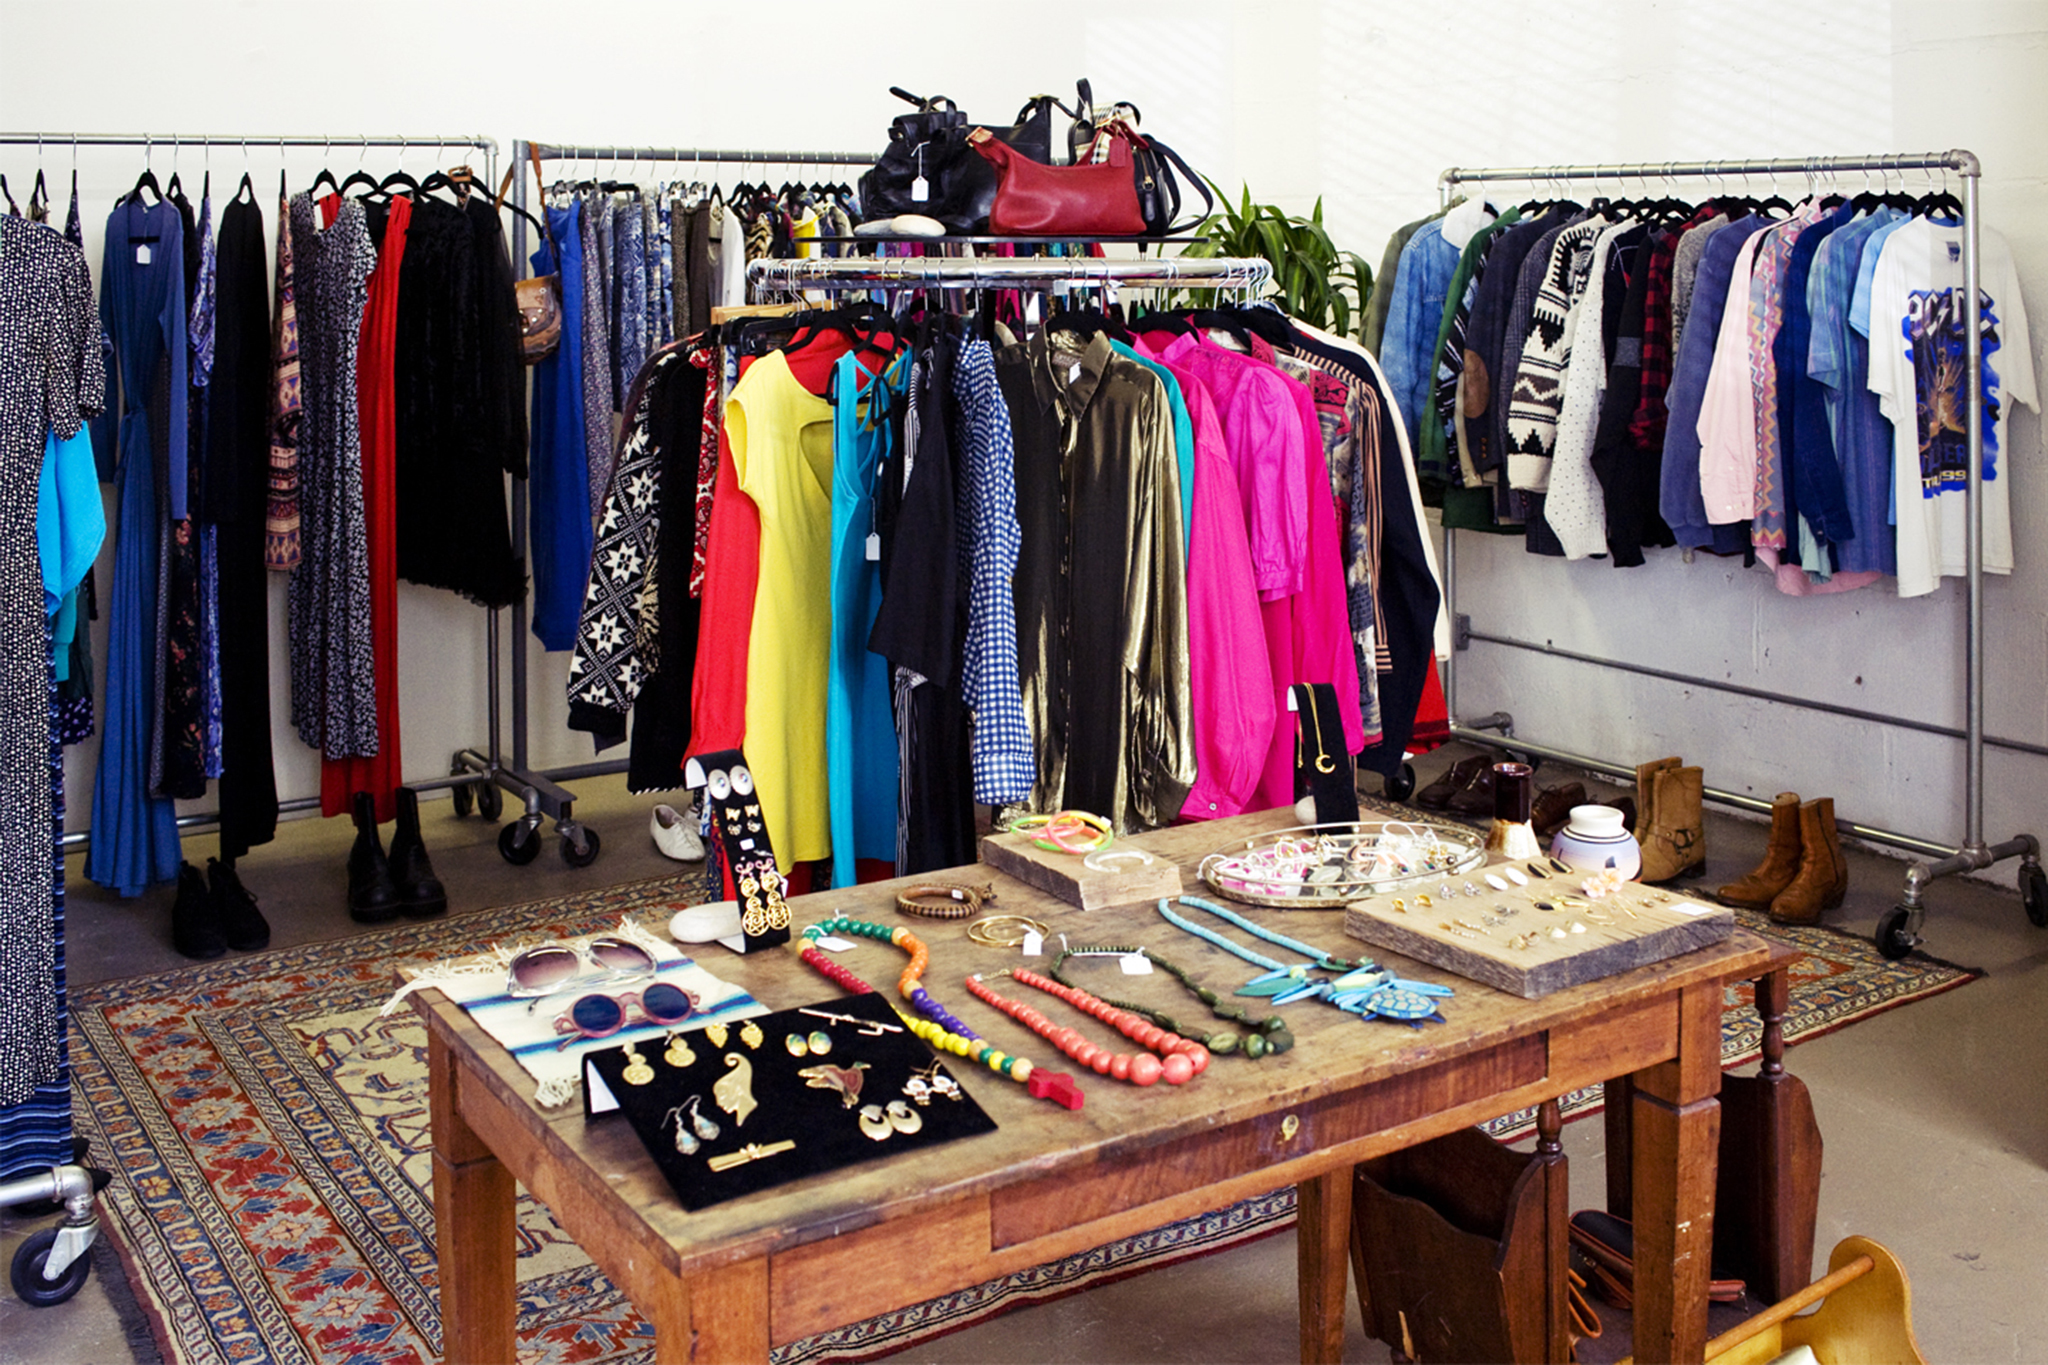 Shop the best vintage clothing stores for outfits and accessories